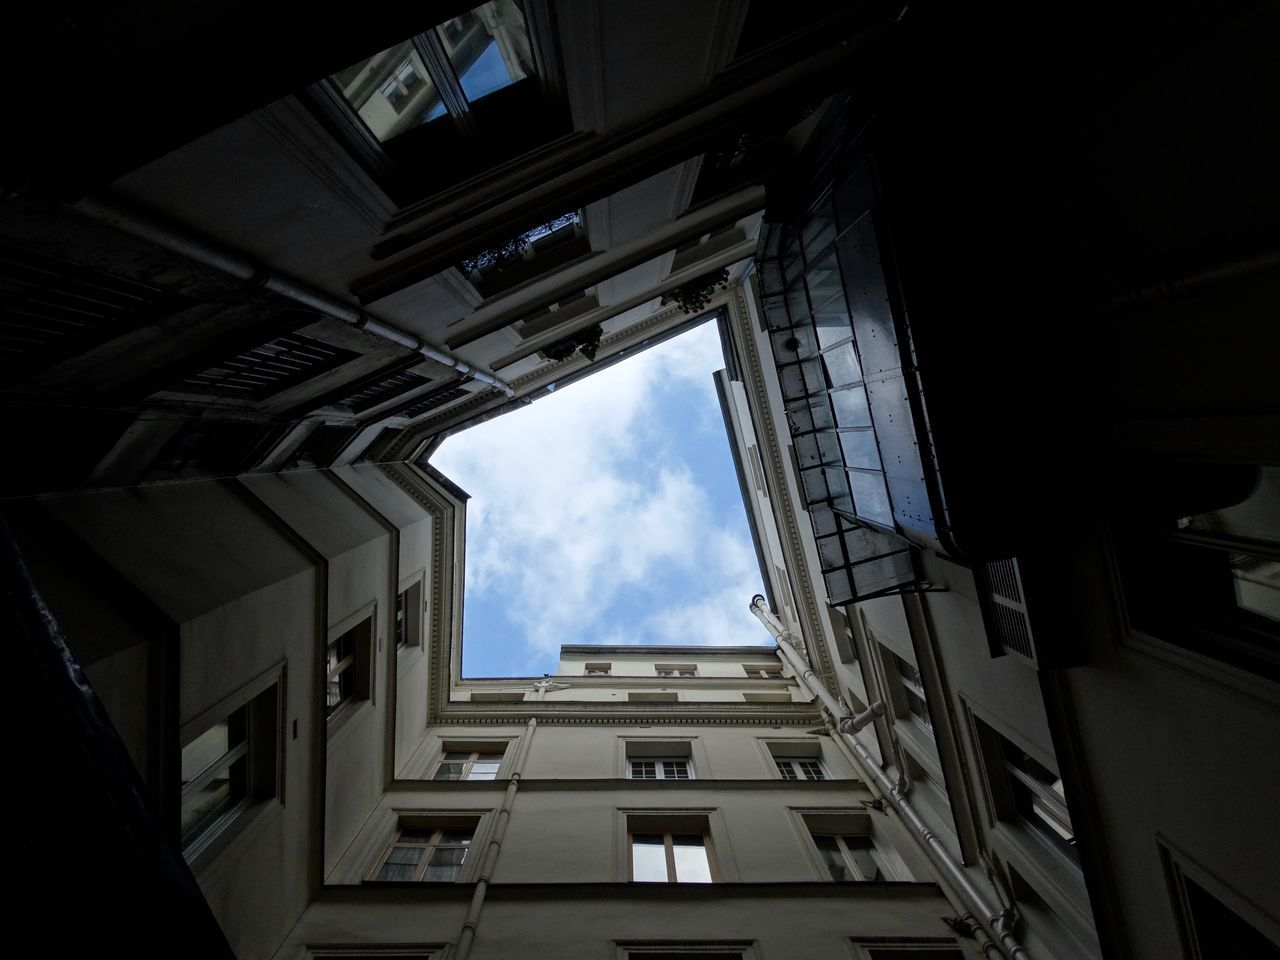 architecture, built structure, building exterior, sky, low angle view, window, cloud - sky, no people, city, day, residential, outdoors